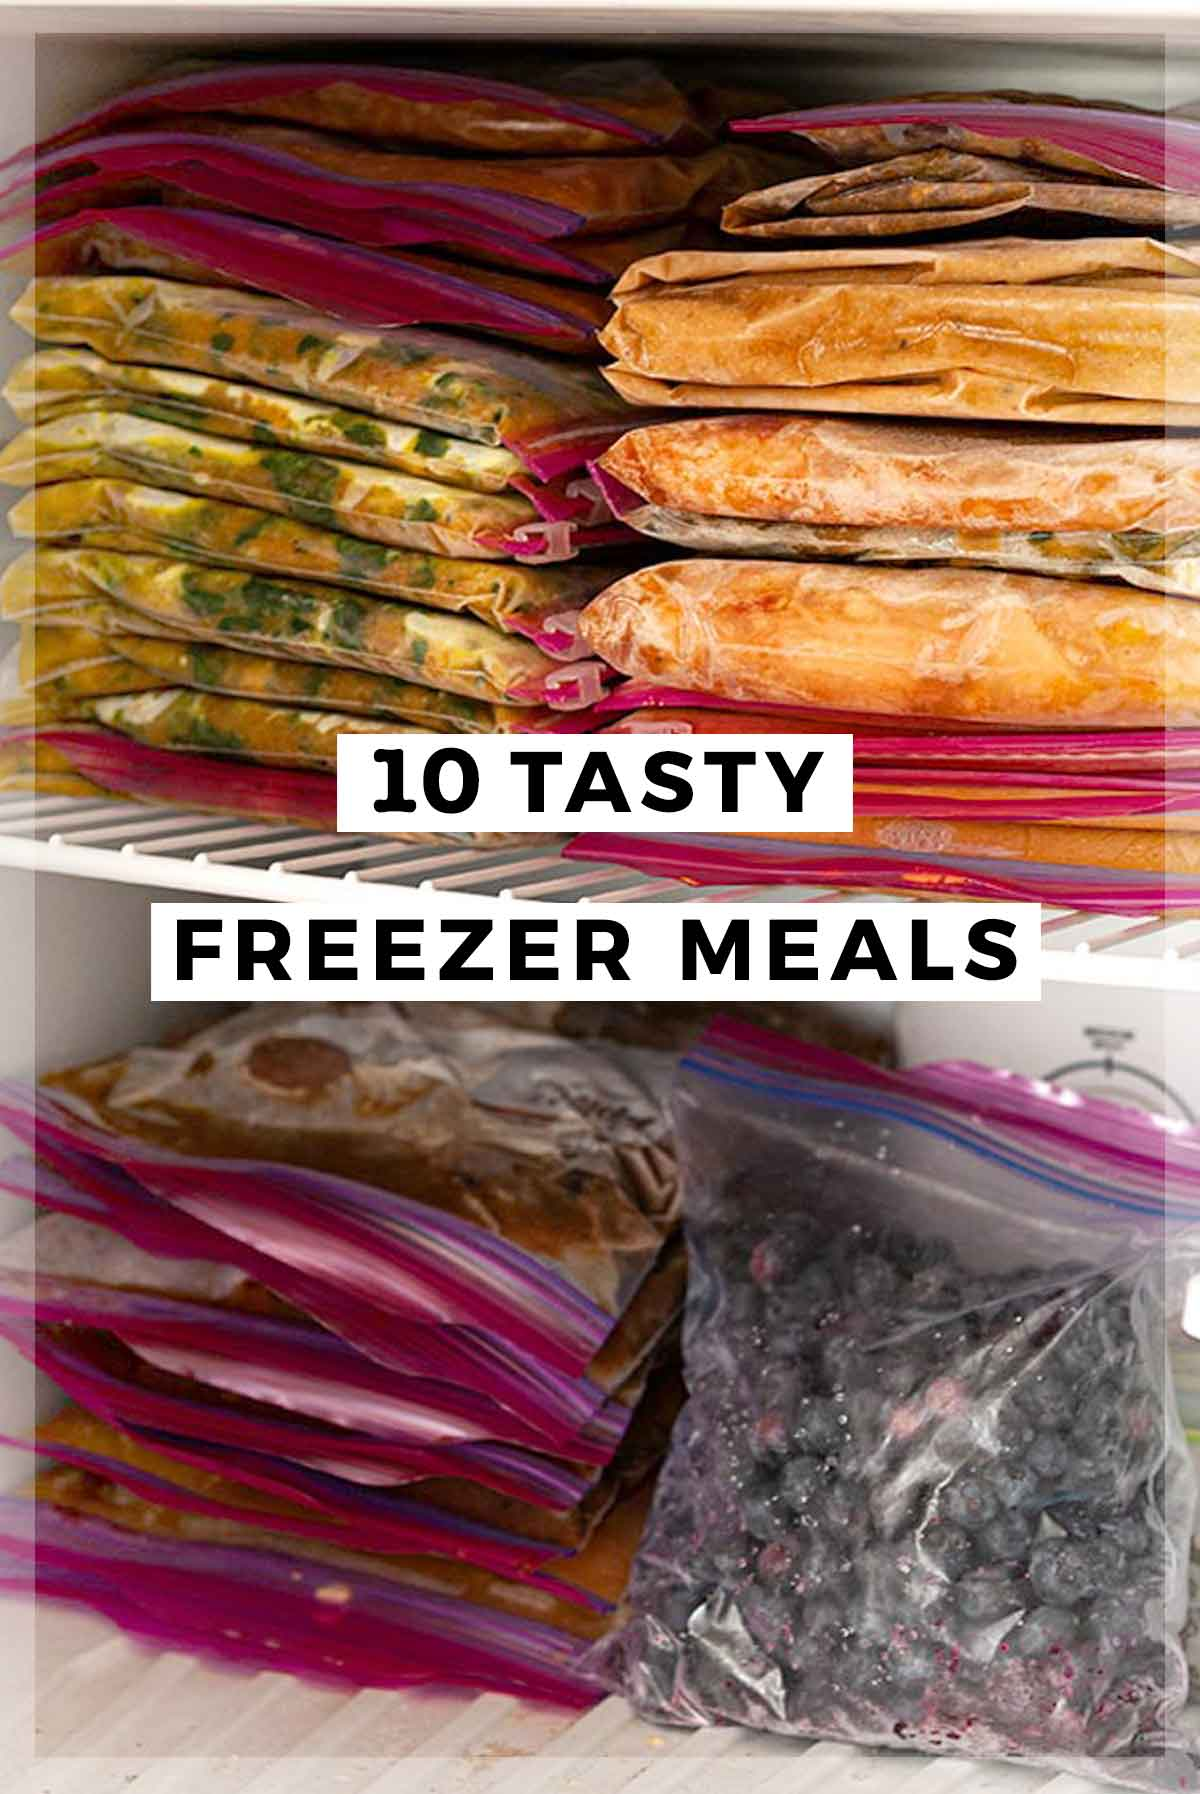 """An image of freezer meals with a title that says """"10 Tasty Freezer Meals."""""""